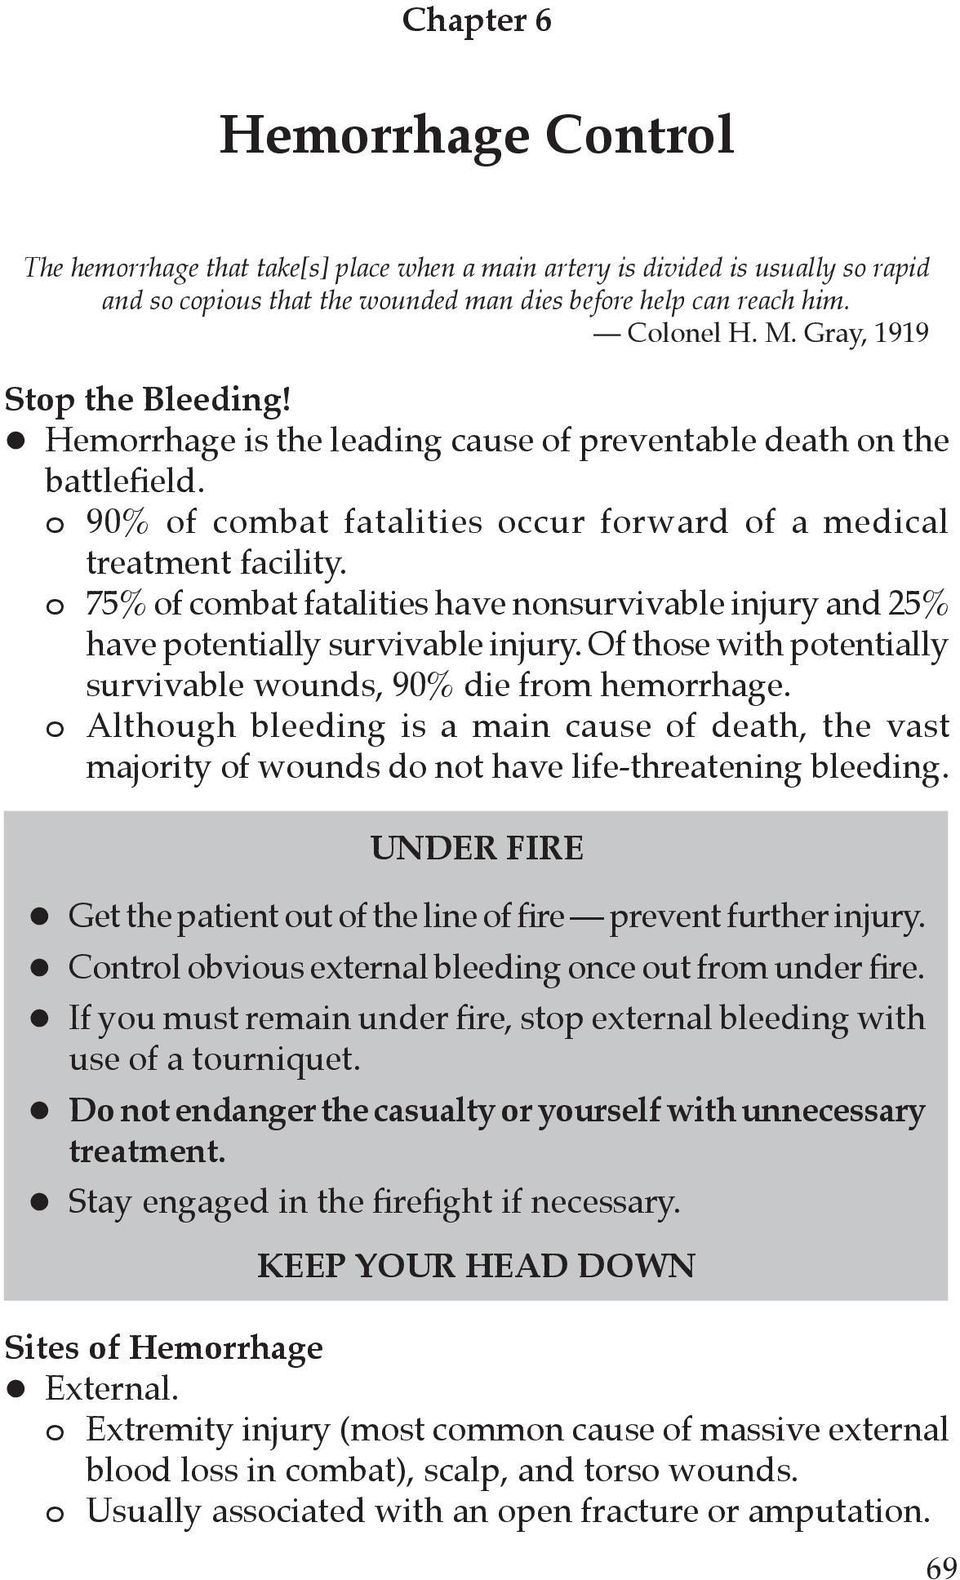 o 75% of combat fatalities have nonsurvivable injury and 25% have potentially survivable injury. Of those with potentially survivable wounds, 90% die from hemorrhage.